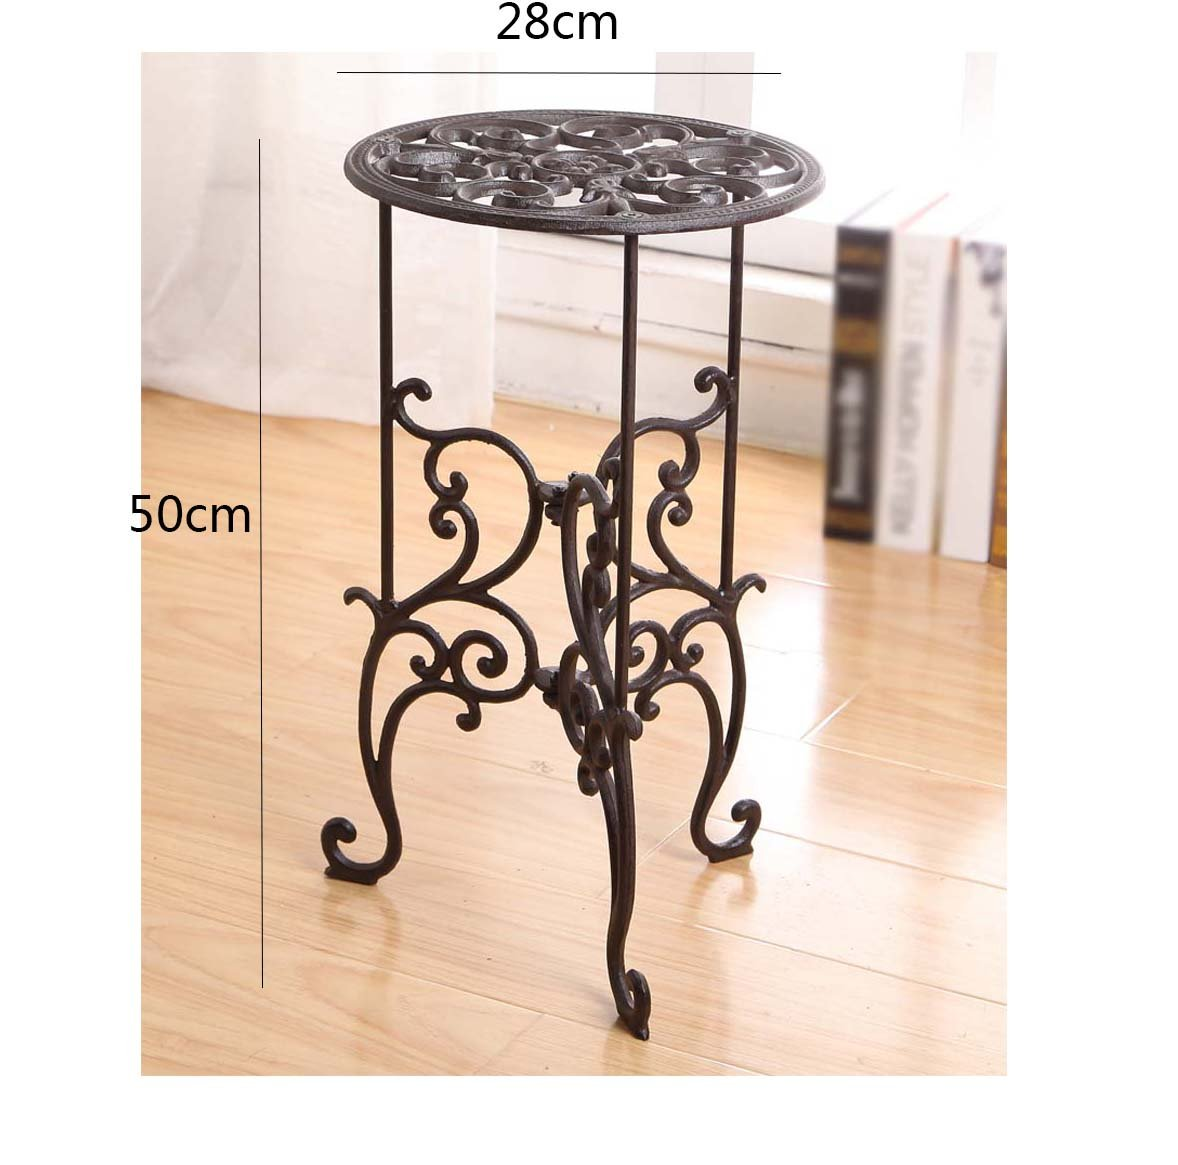 AIDELAI European cast iron flower rack shelves home flower pots decorative ornaments Patio Garden Pergolas by AIDELAI